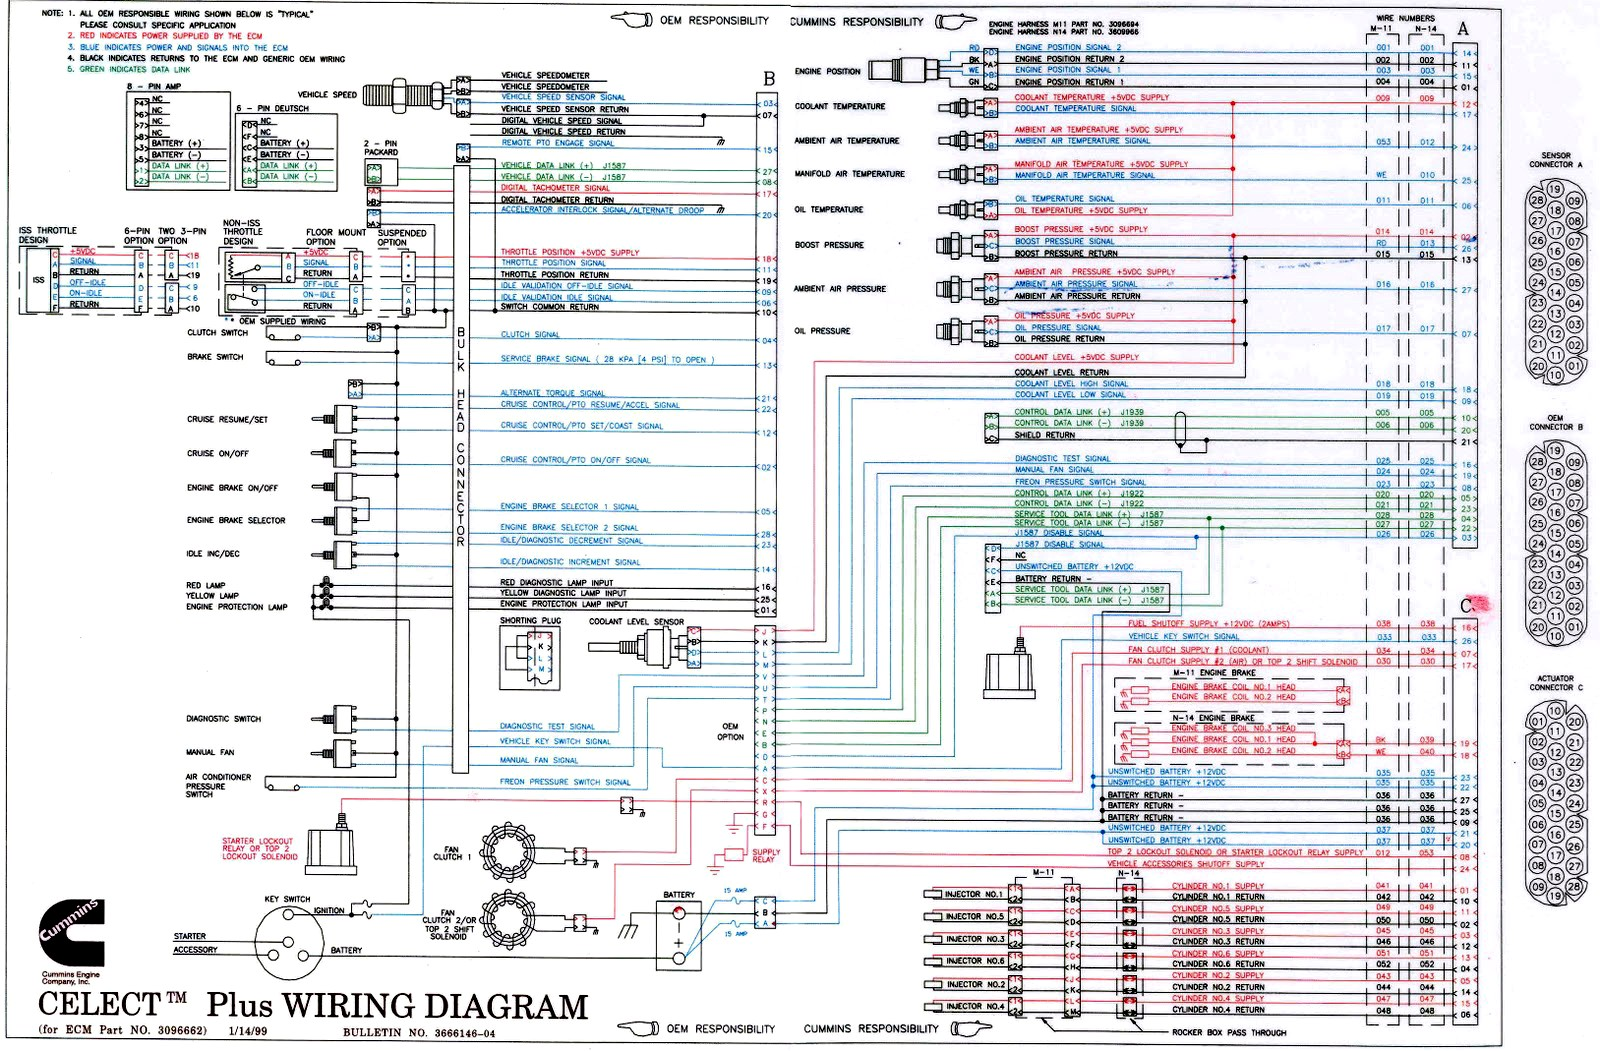 Awesome 1993 Kenworth T600 Cab Wiring Diagram Images - Electrical ...